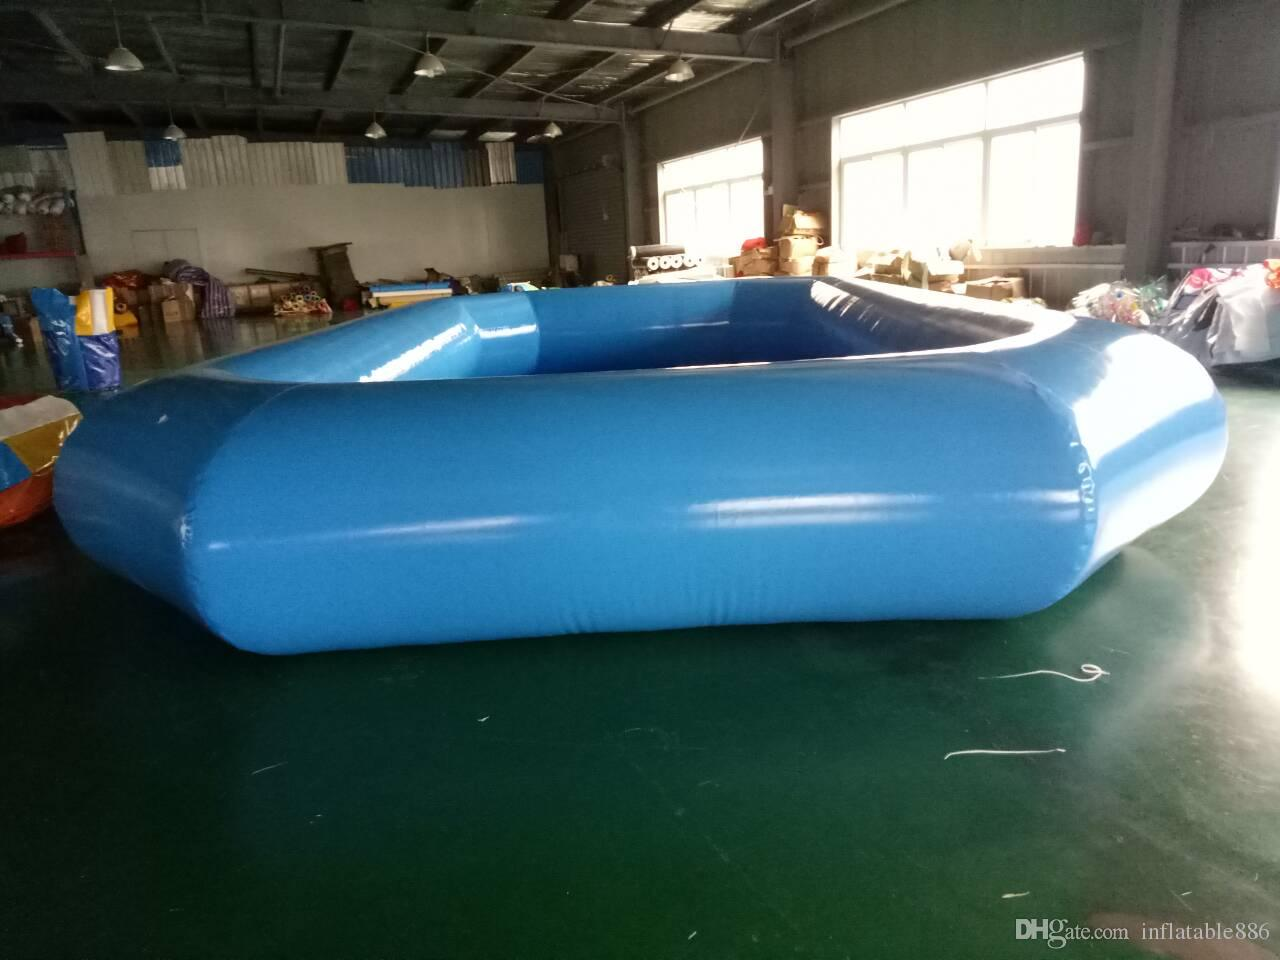 2019 2018 Factory Price Inflatable PVC Tarpaulin Pool, Swimming Pool For  Sale From Inflatable886, $653.27 | DHgate.Com